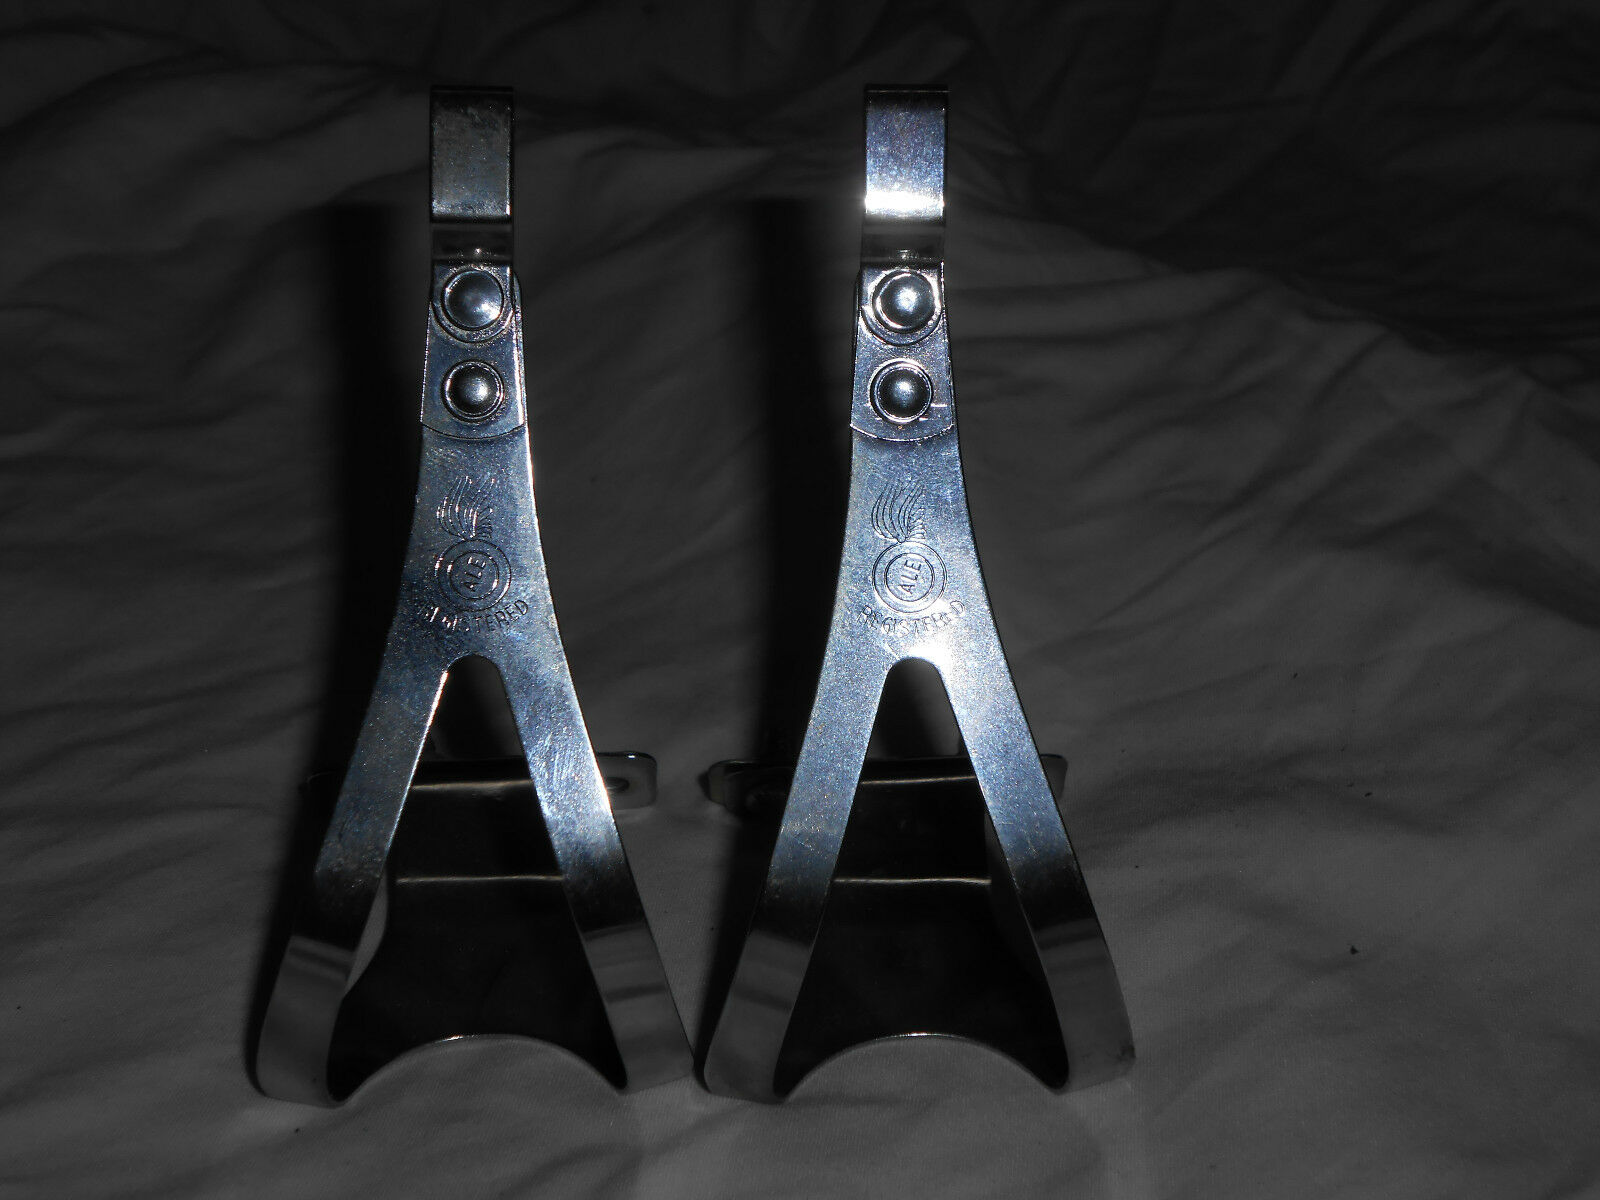 NOS Vintage 1970s ALE    C Torino Italian steel pedal toe clips - Small  sale online discount